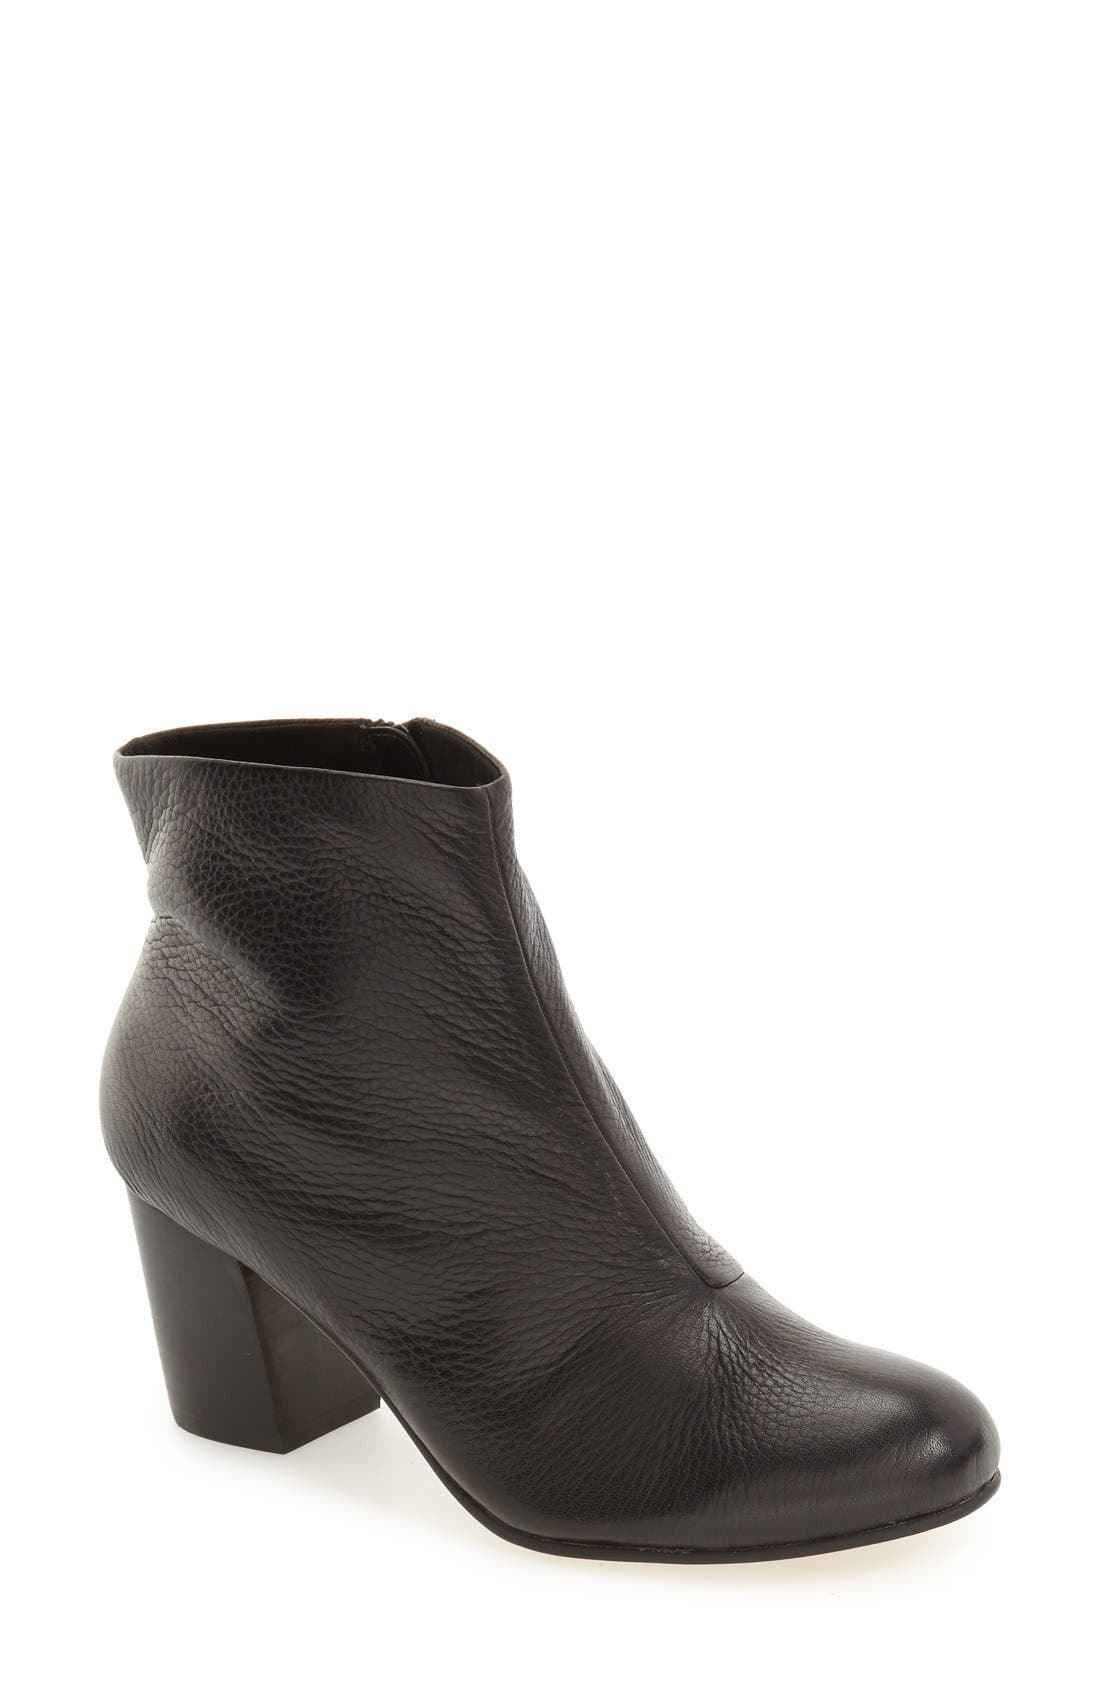 Main Image - Sole Society 'Violette' Bootie (Women)